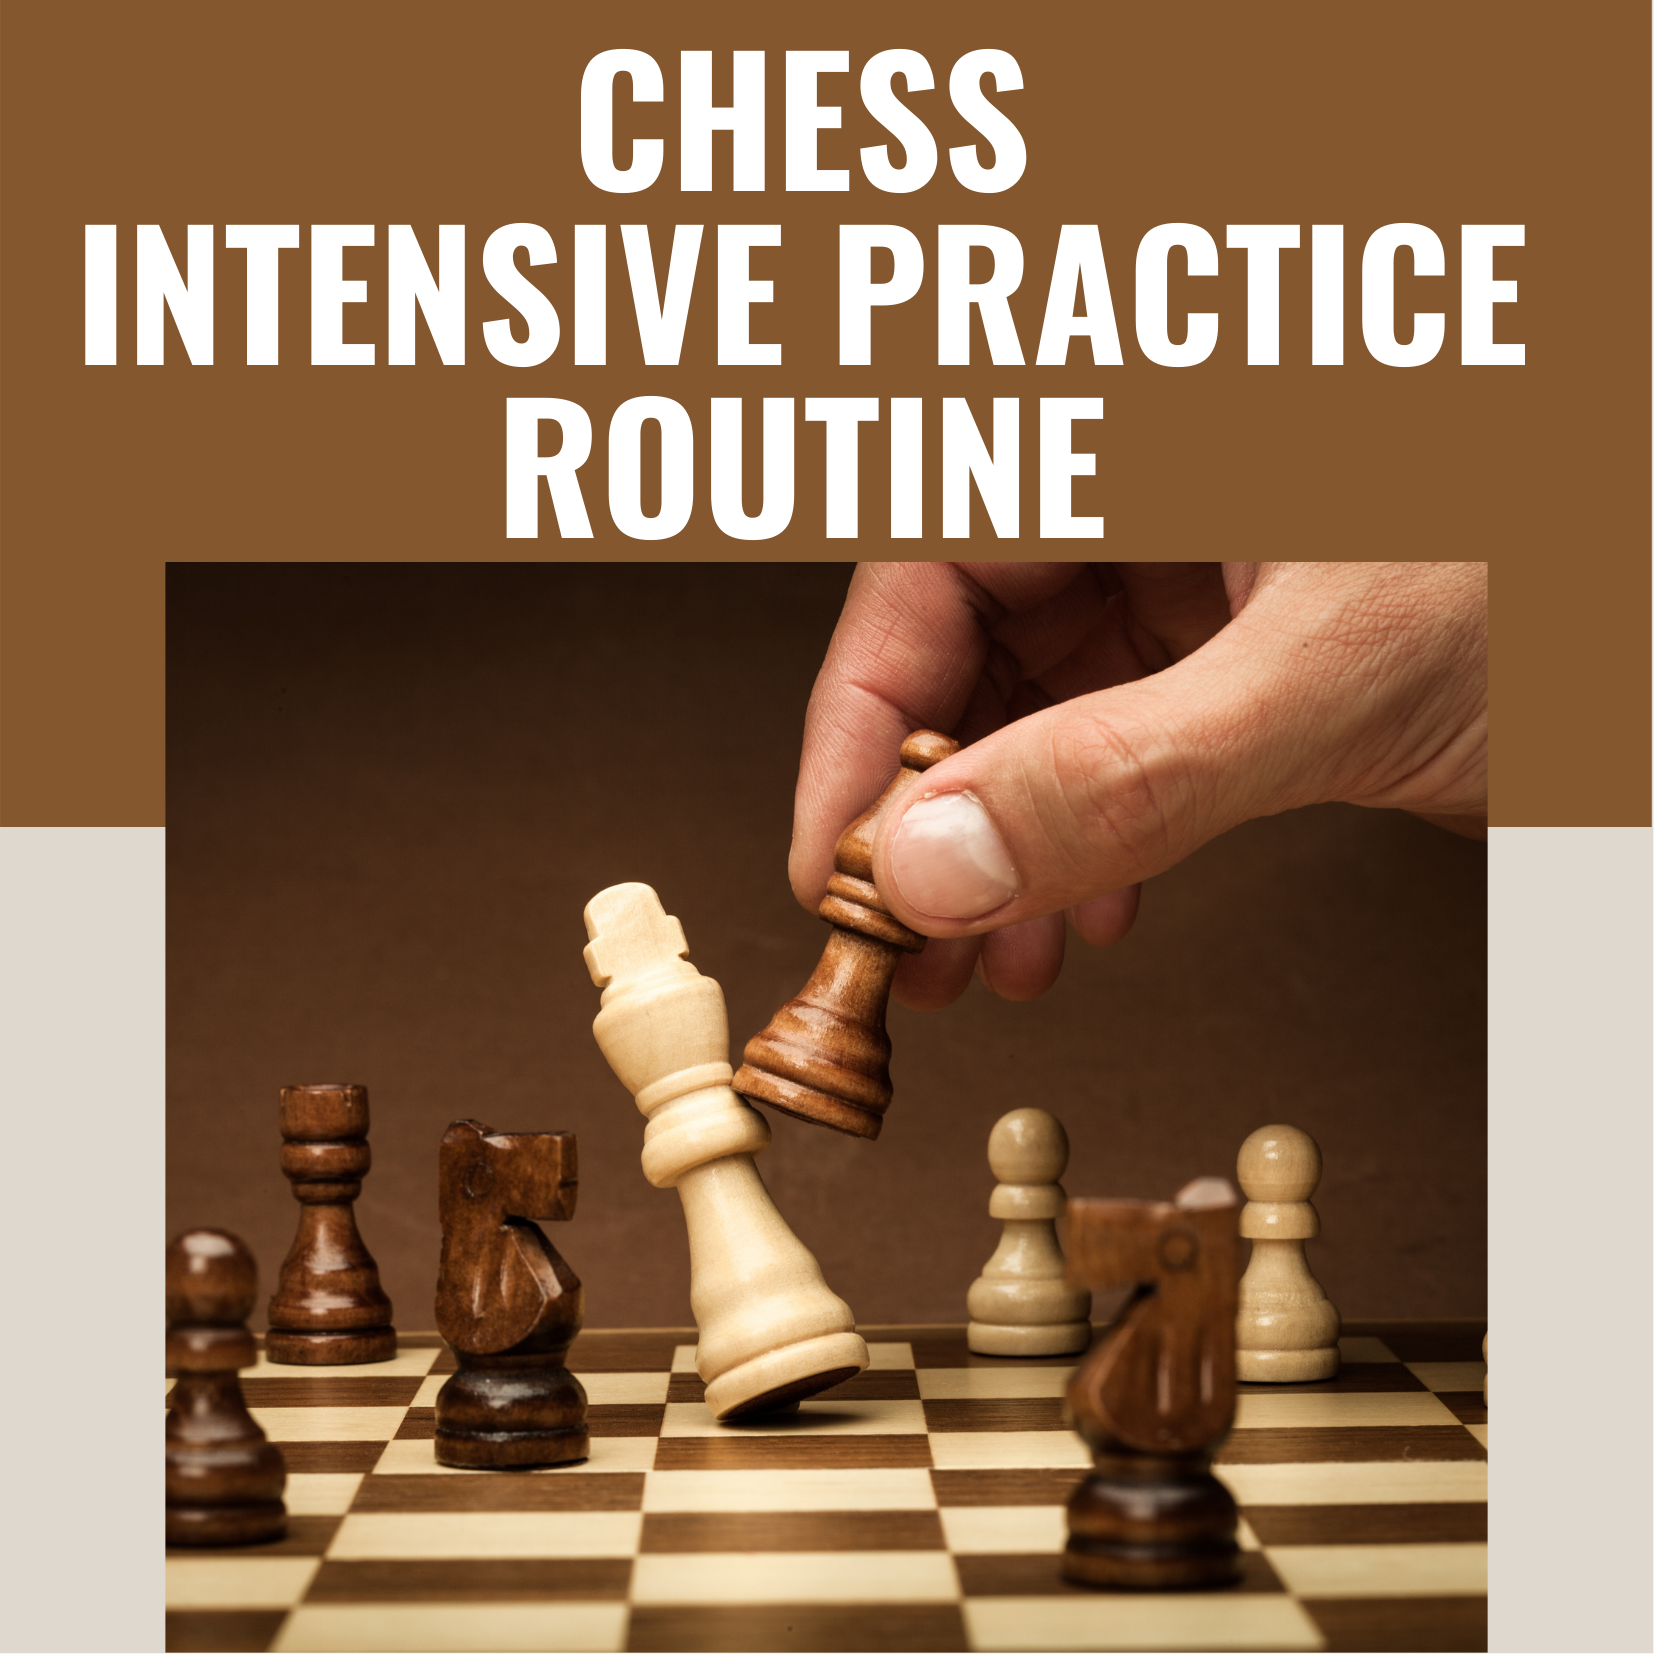 Chess Intensive Practice Routine